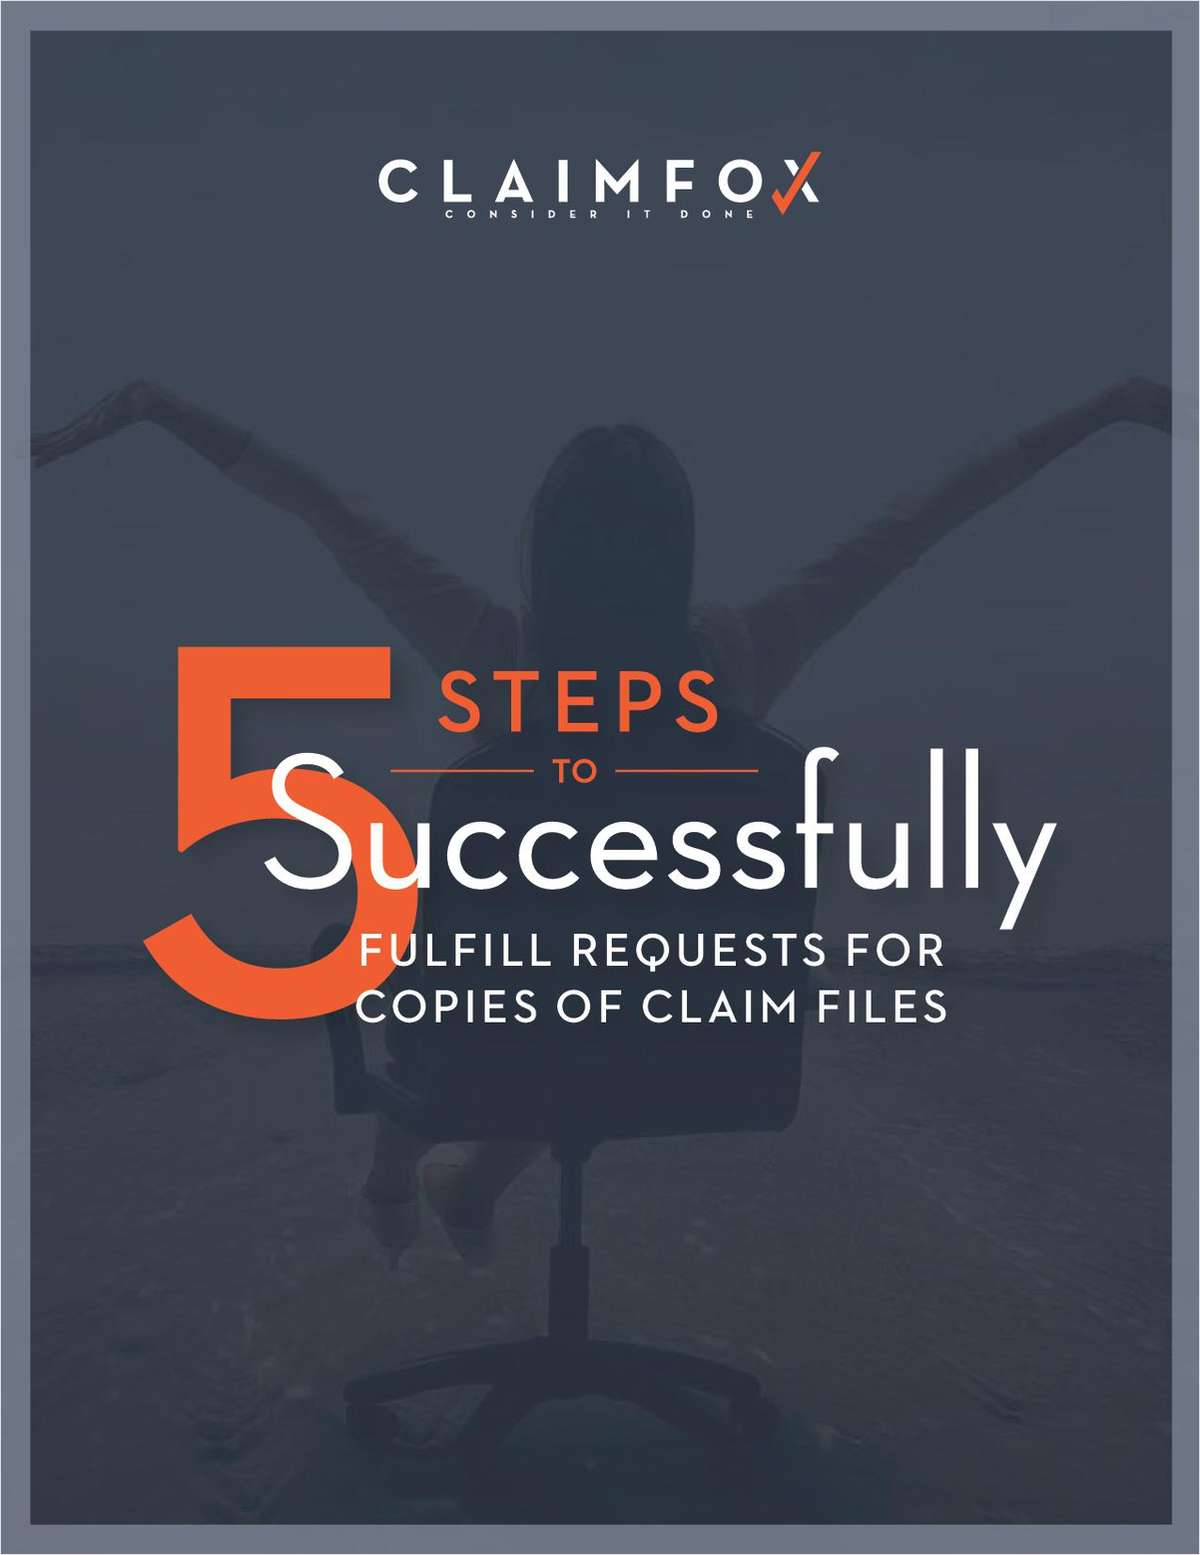 5 Steps to Successfully Fulfill Requests for Copies of Claim Files